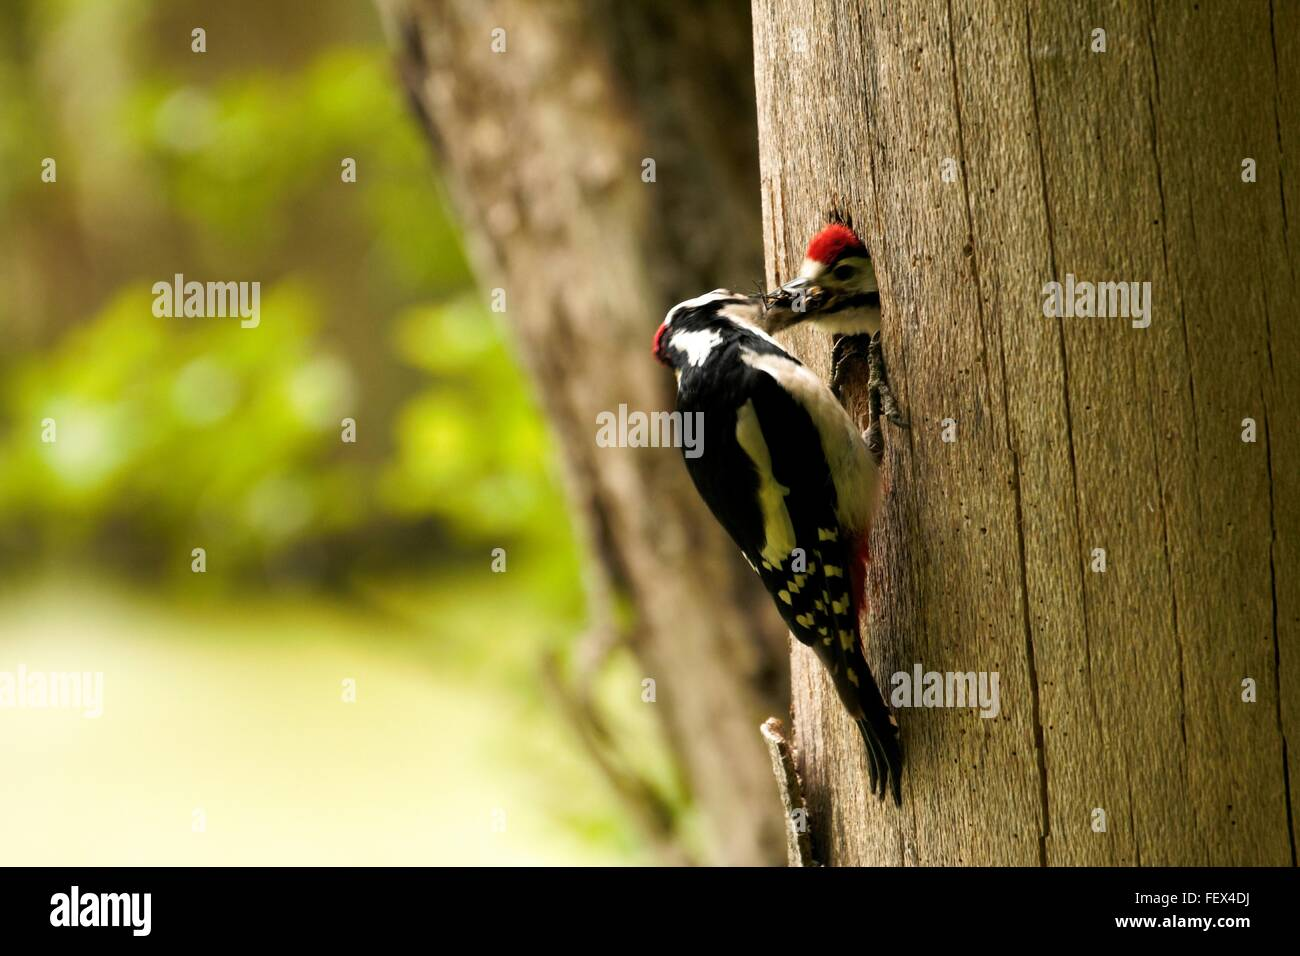 Close-Up Of Woodpeckers On Tree Trunk - Stock Image